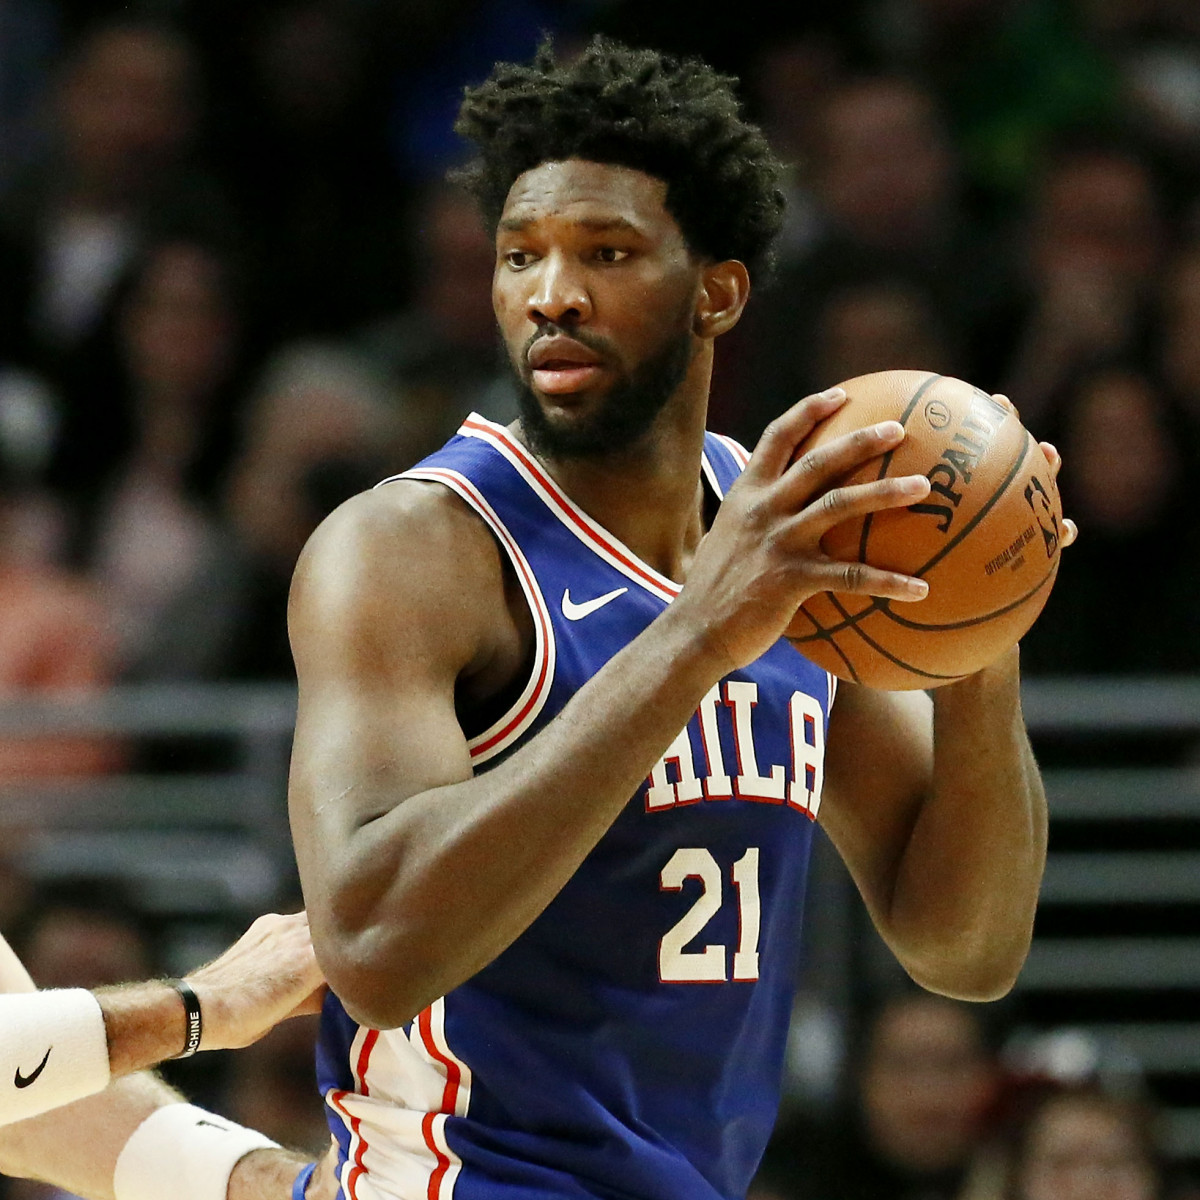 Stats: Joel Embiid's Top 10 Scoring Games